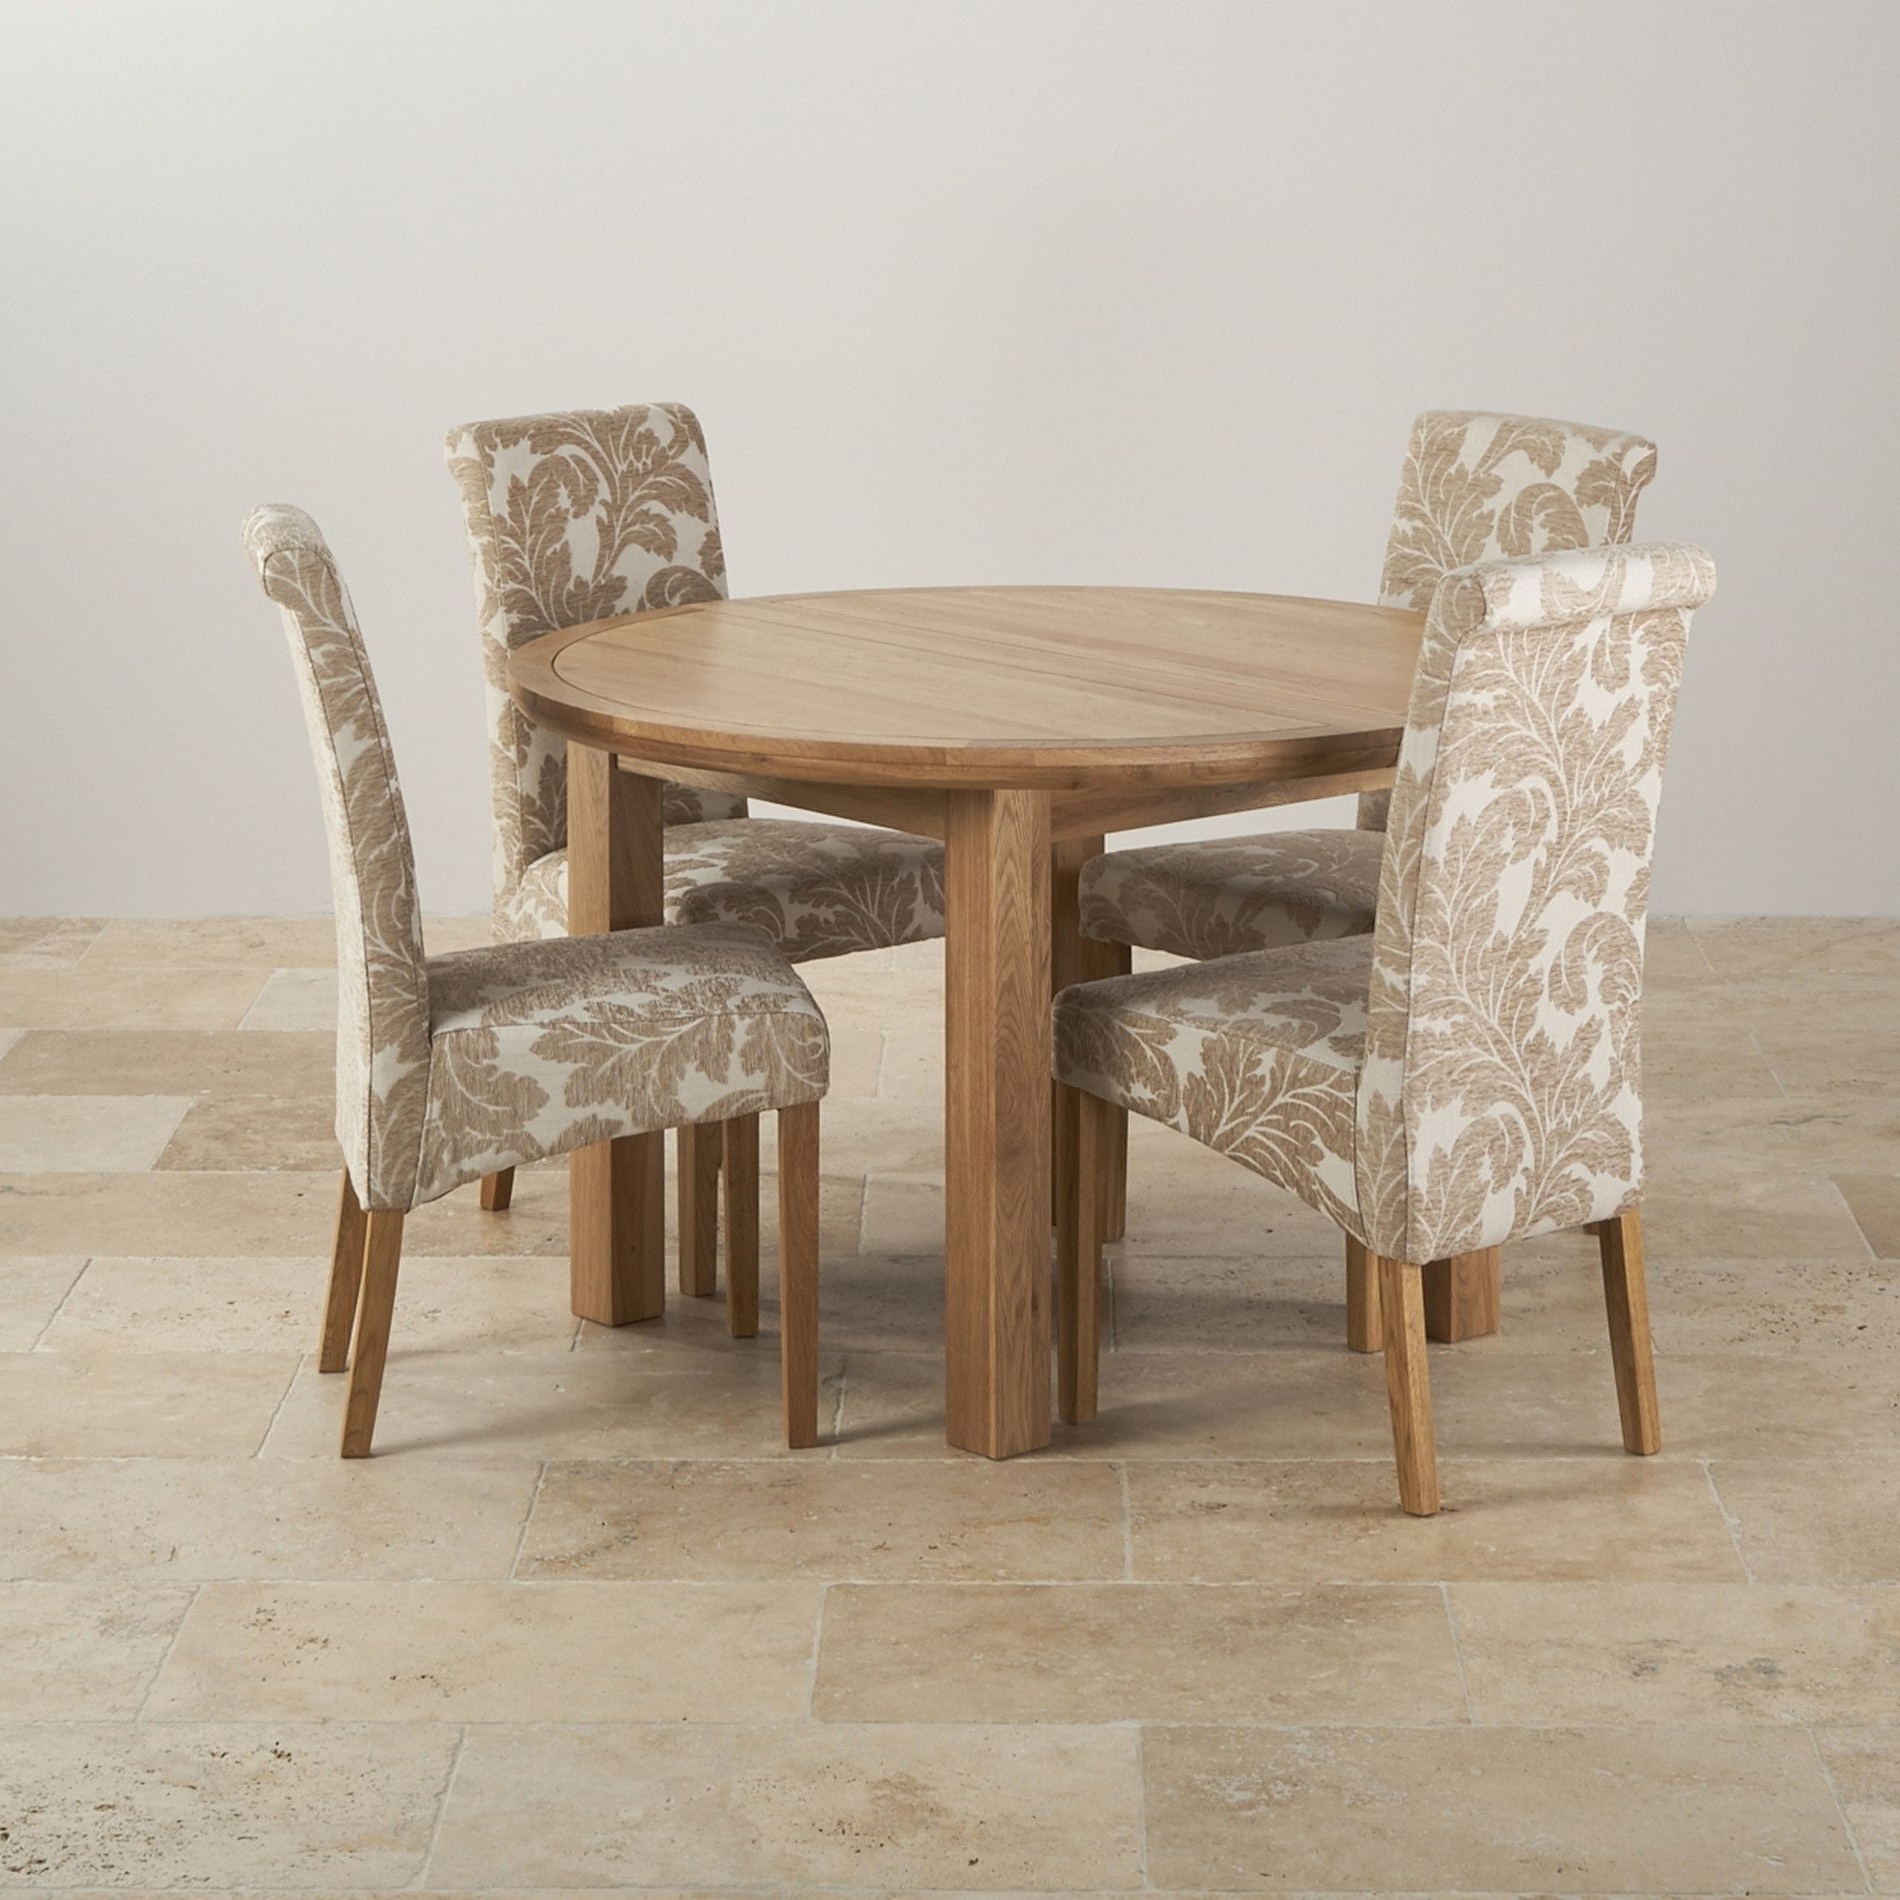 Latest Knightsbridge Natural Oak Dining Set – 4Ft Round Extending Table & 4 With Regard To Extendable Oak Dining Tables And Chairs (View 13 of 25)